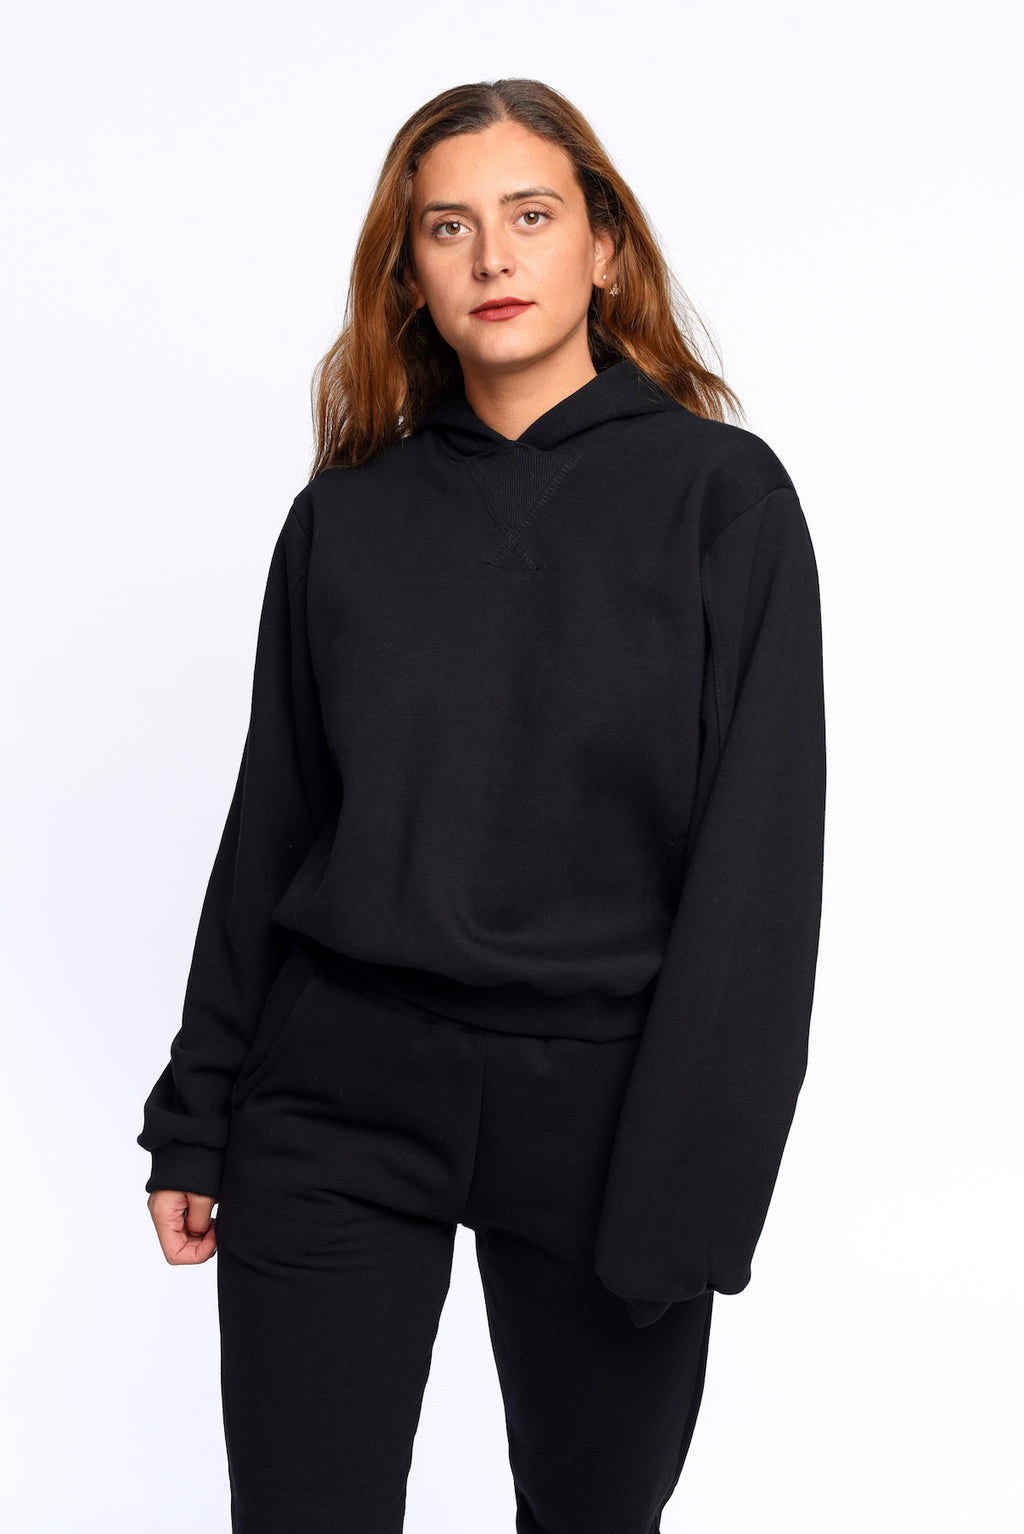 The black sweatshirt